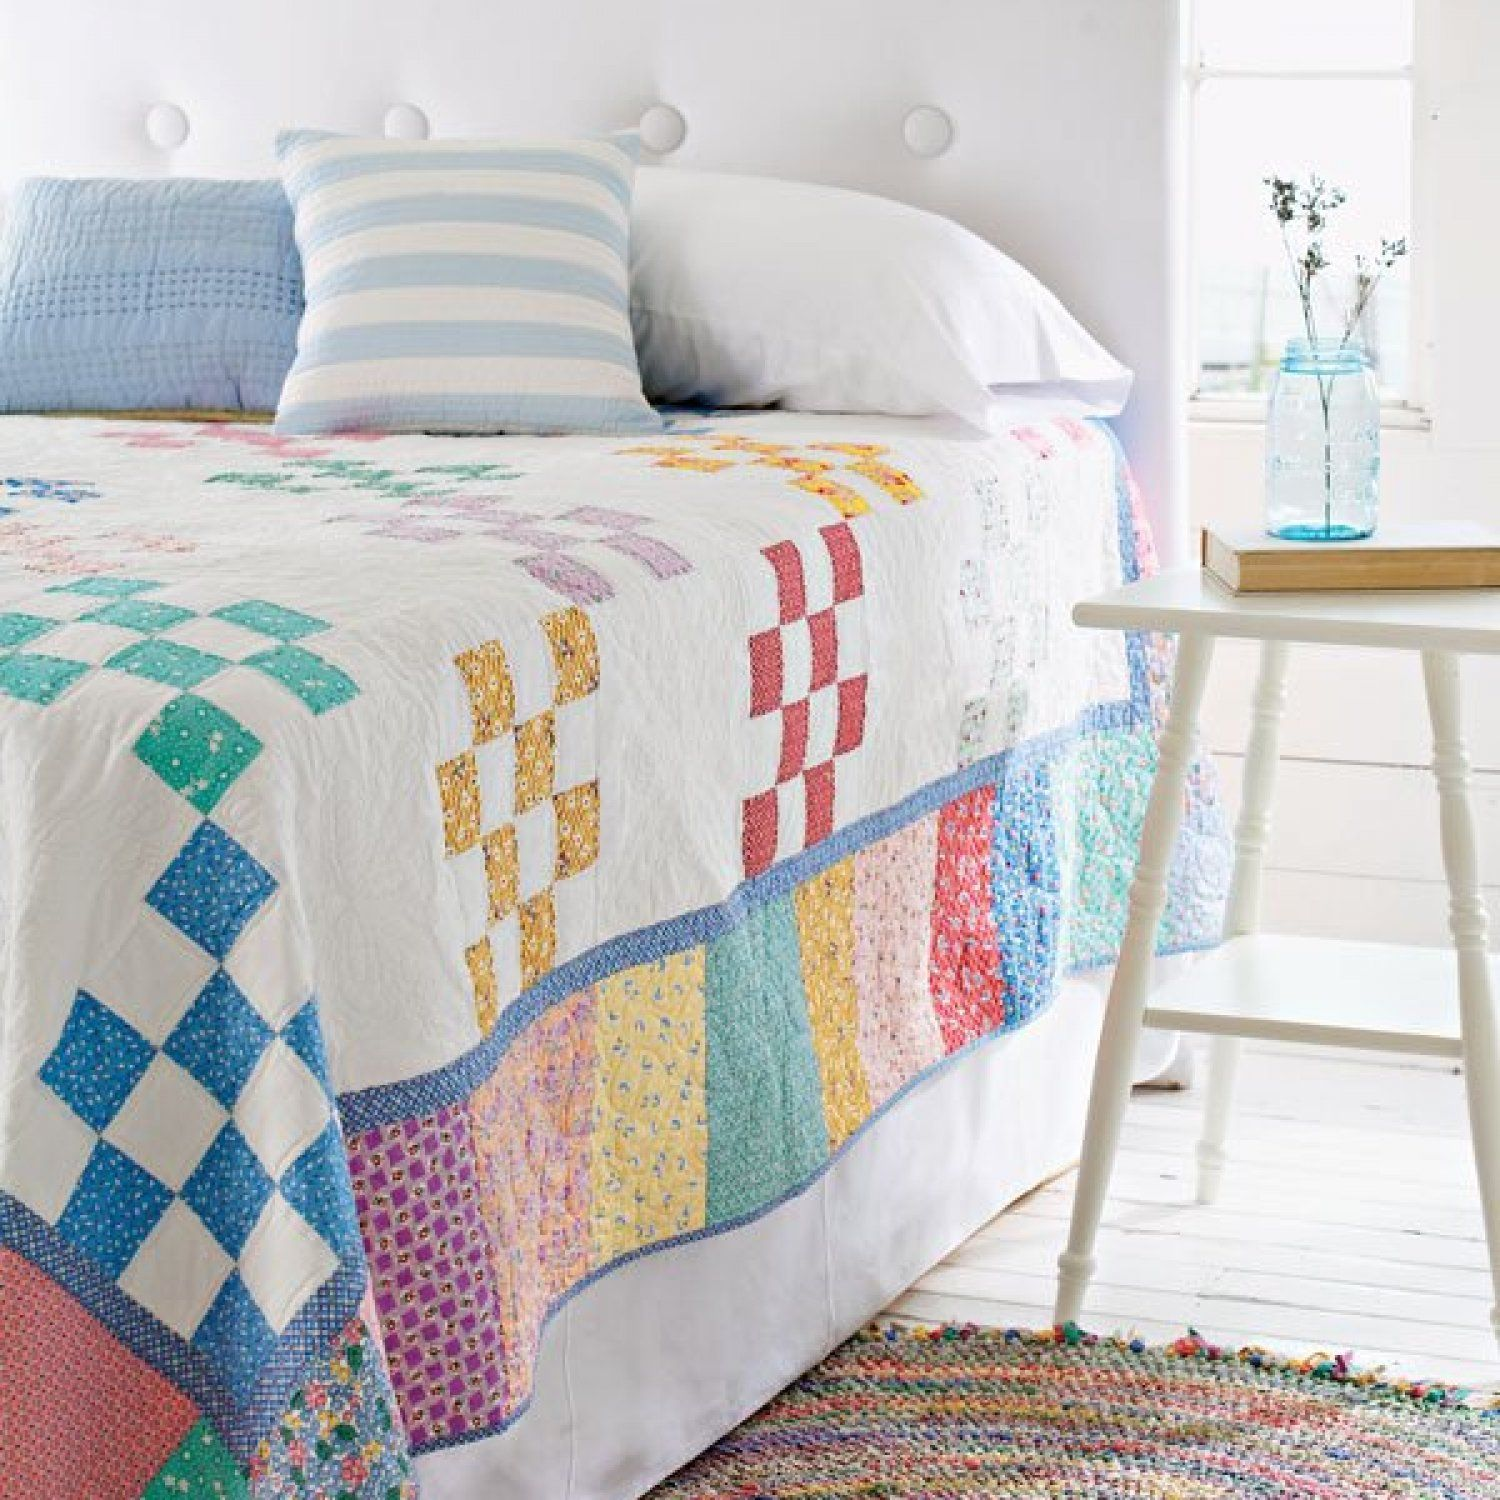 Free Bed Quilt Patterns Quilt bedding, Bed quilt